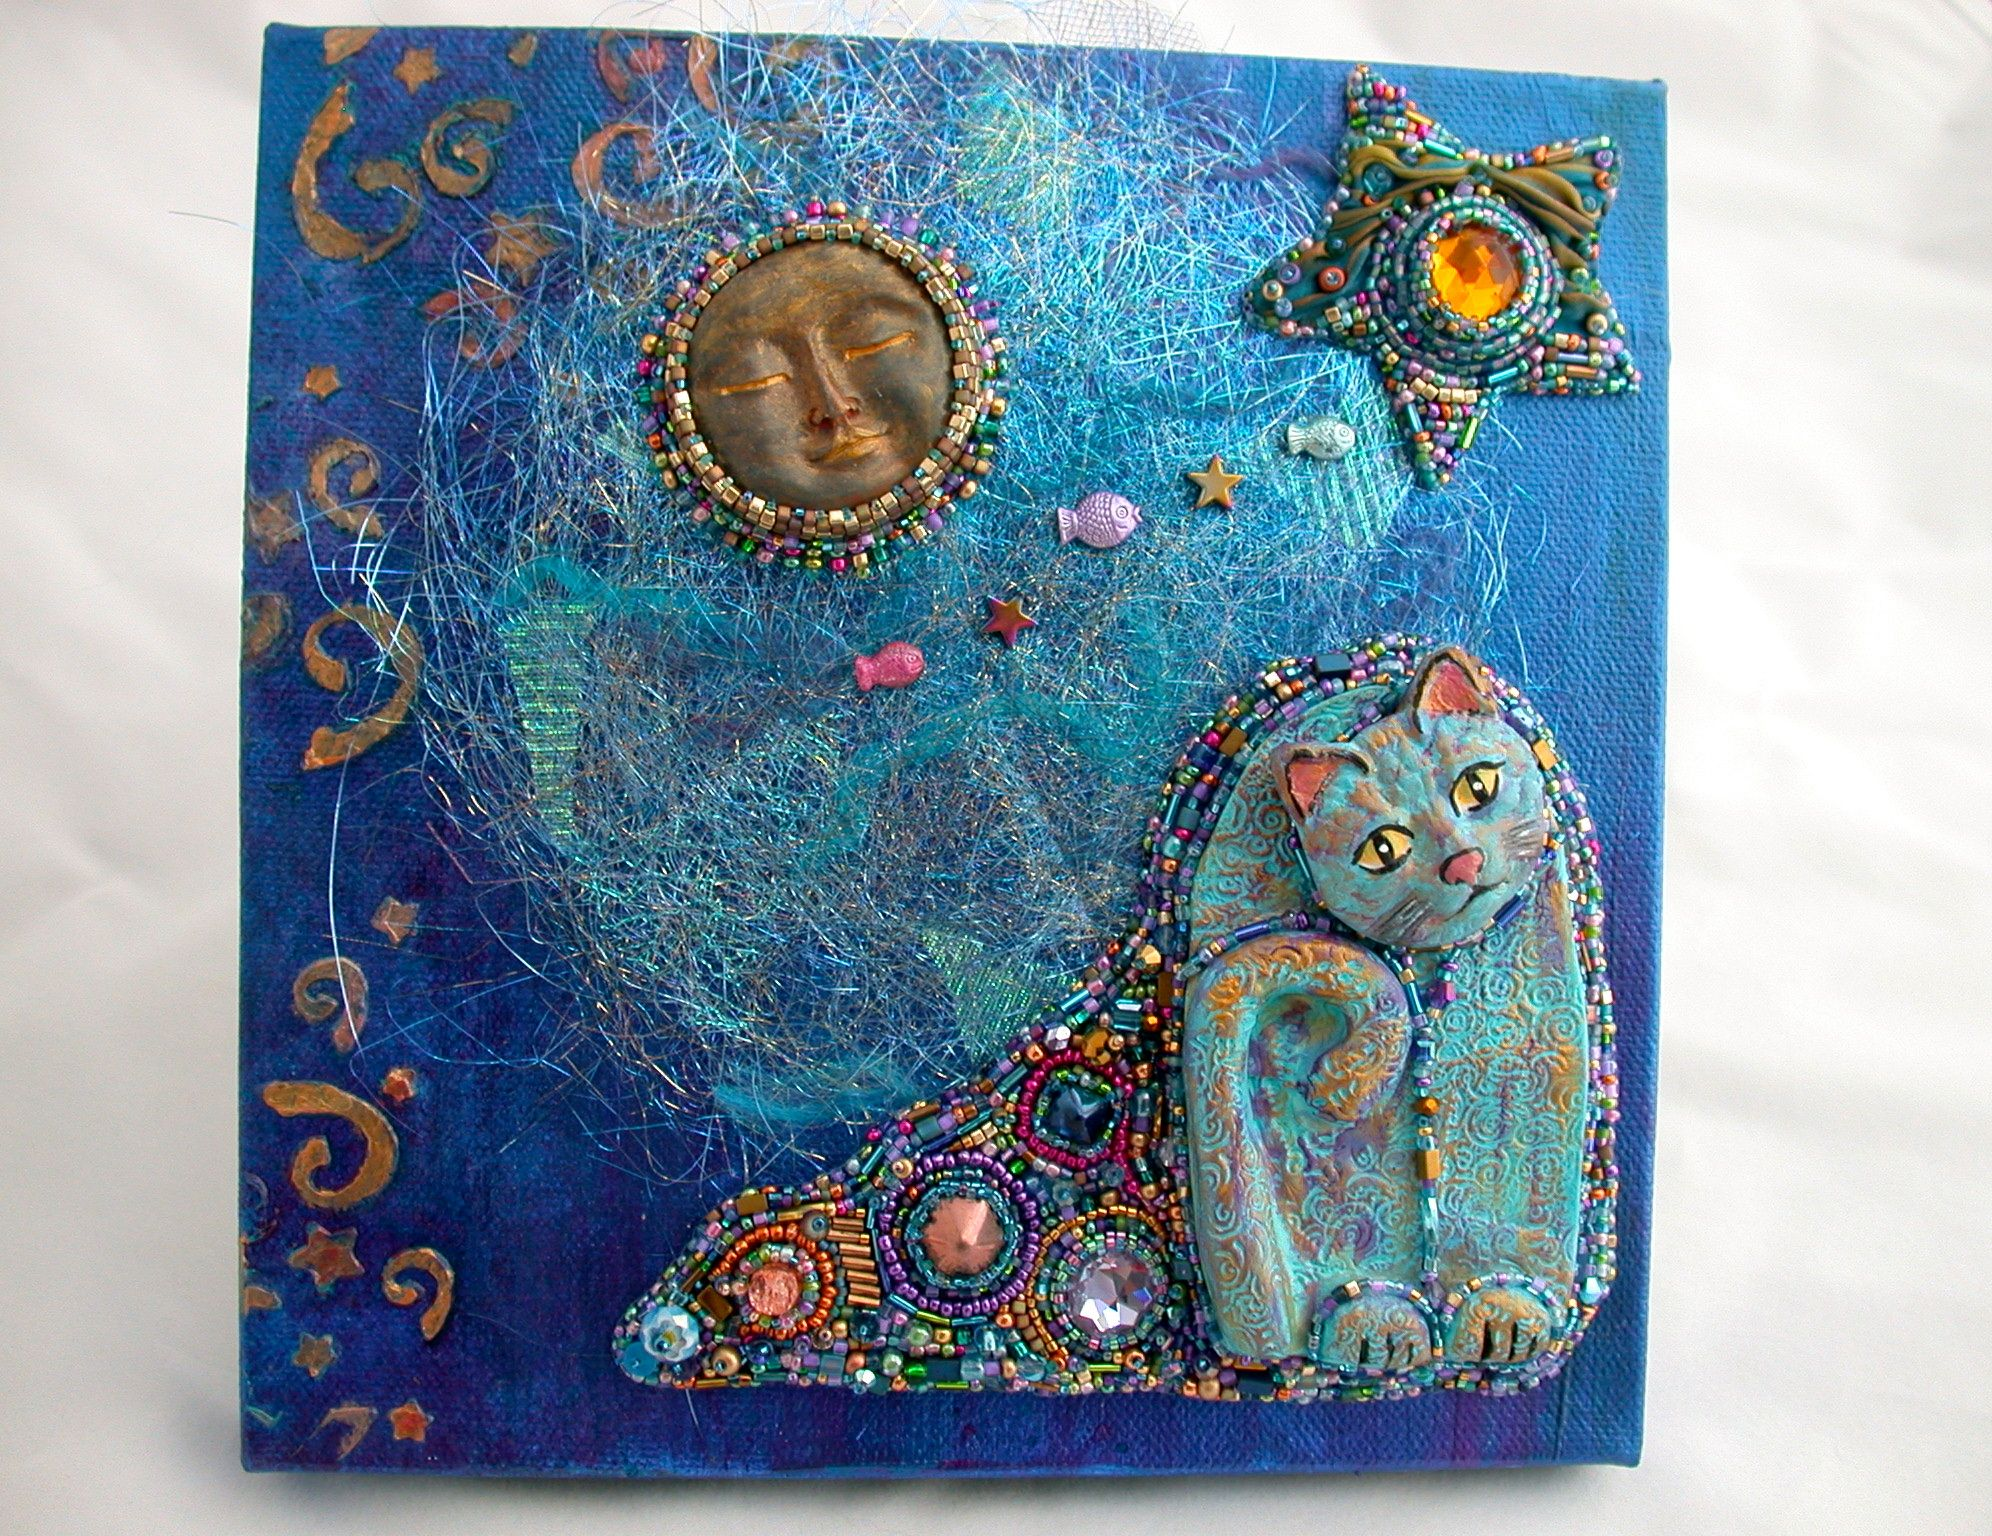 Blue cat dreaming mixed media canvas with bead